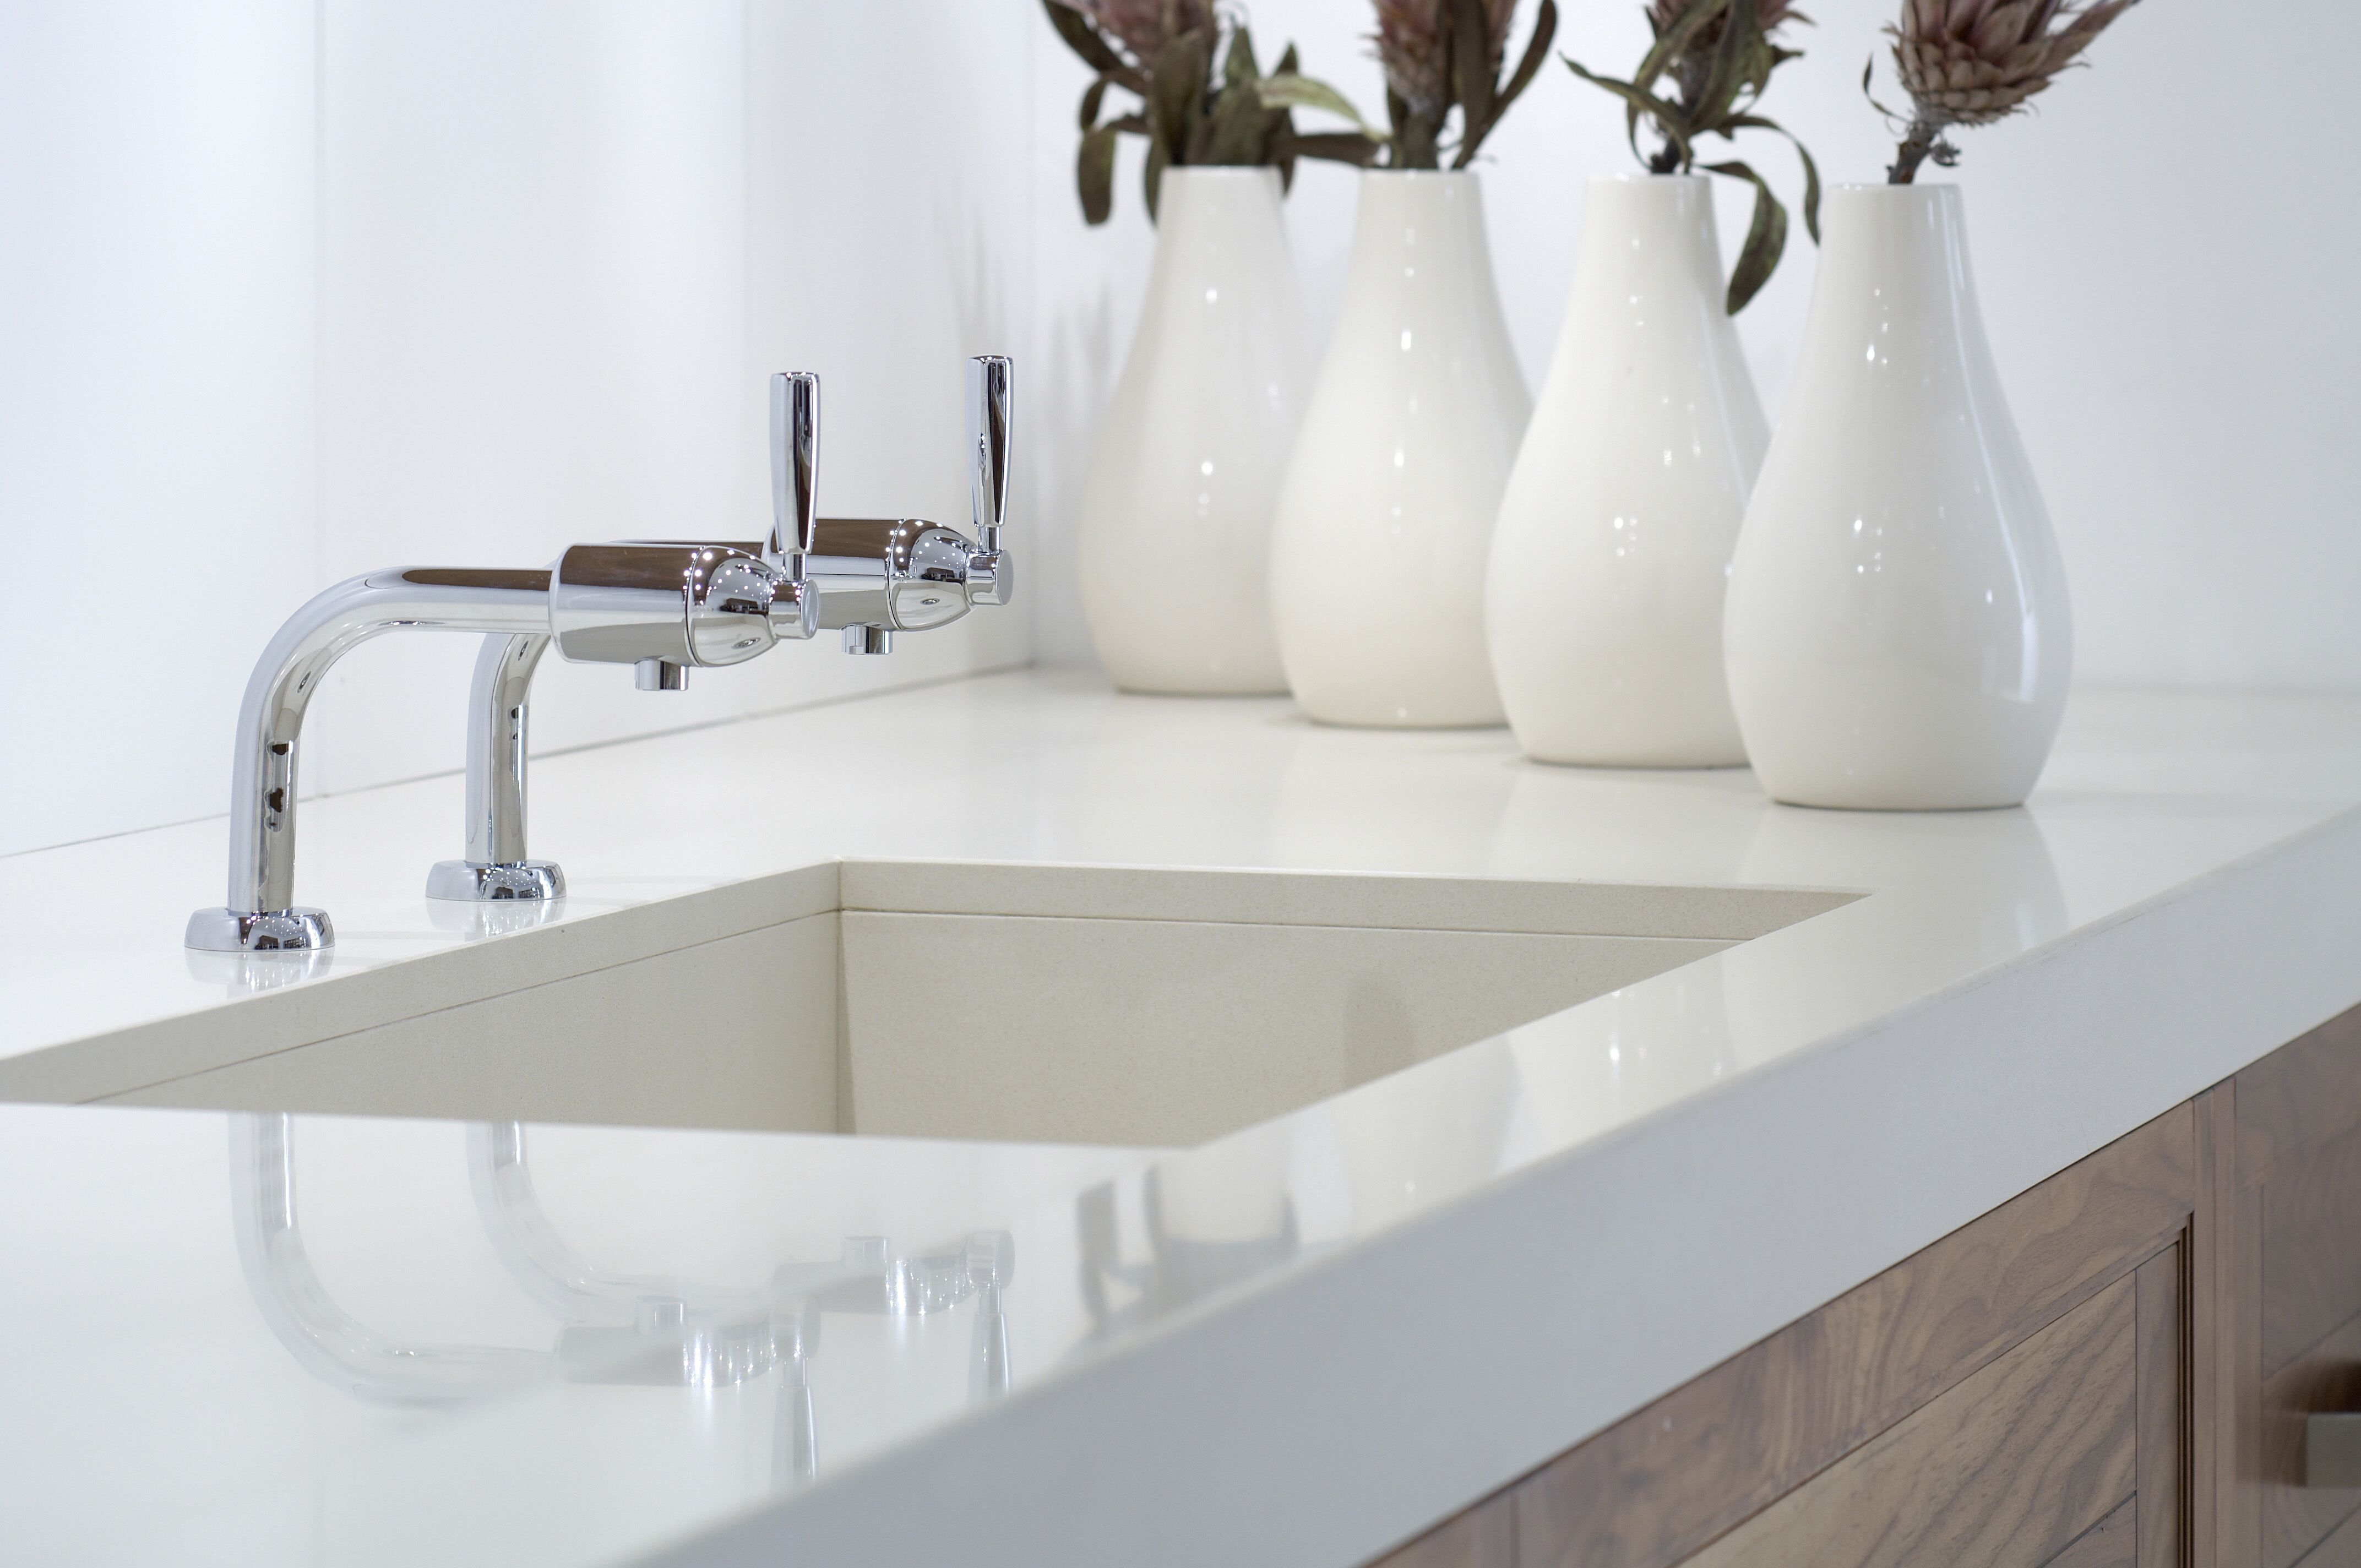 Perrin And Rowe Kitchen Faucet Cirrus Bibcock Taps Contemporary Collection By Perrin Rowe